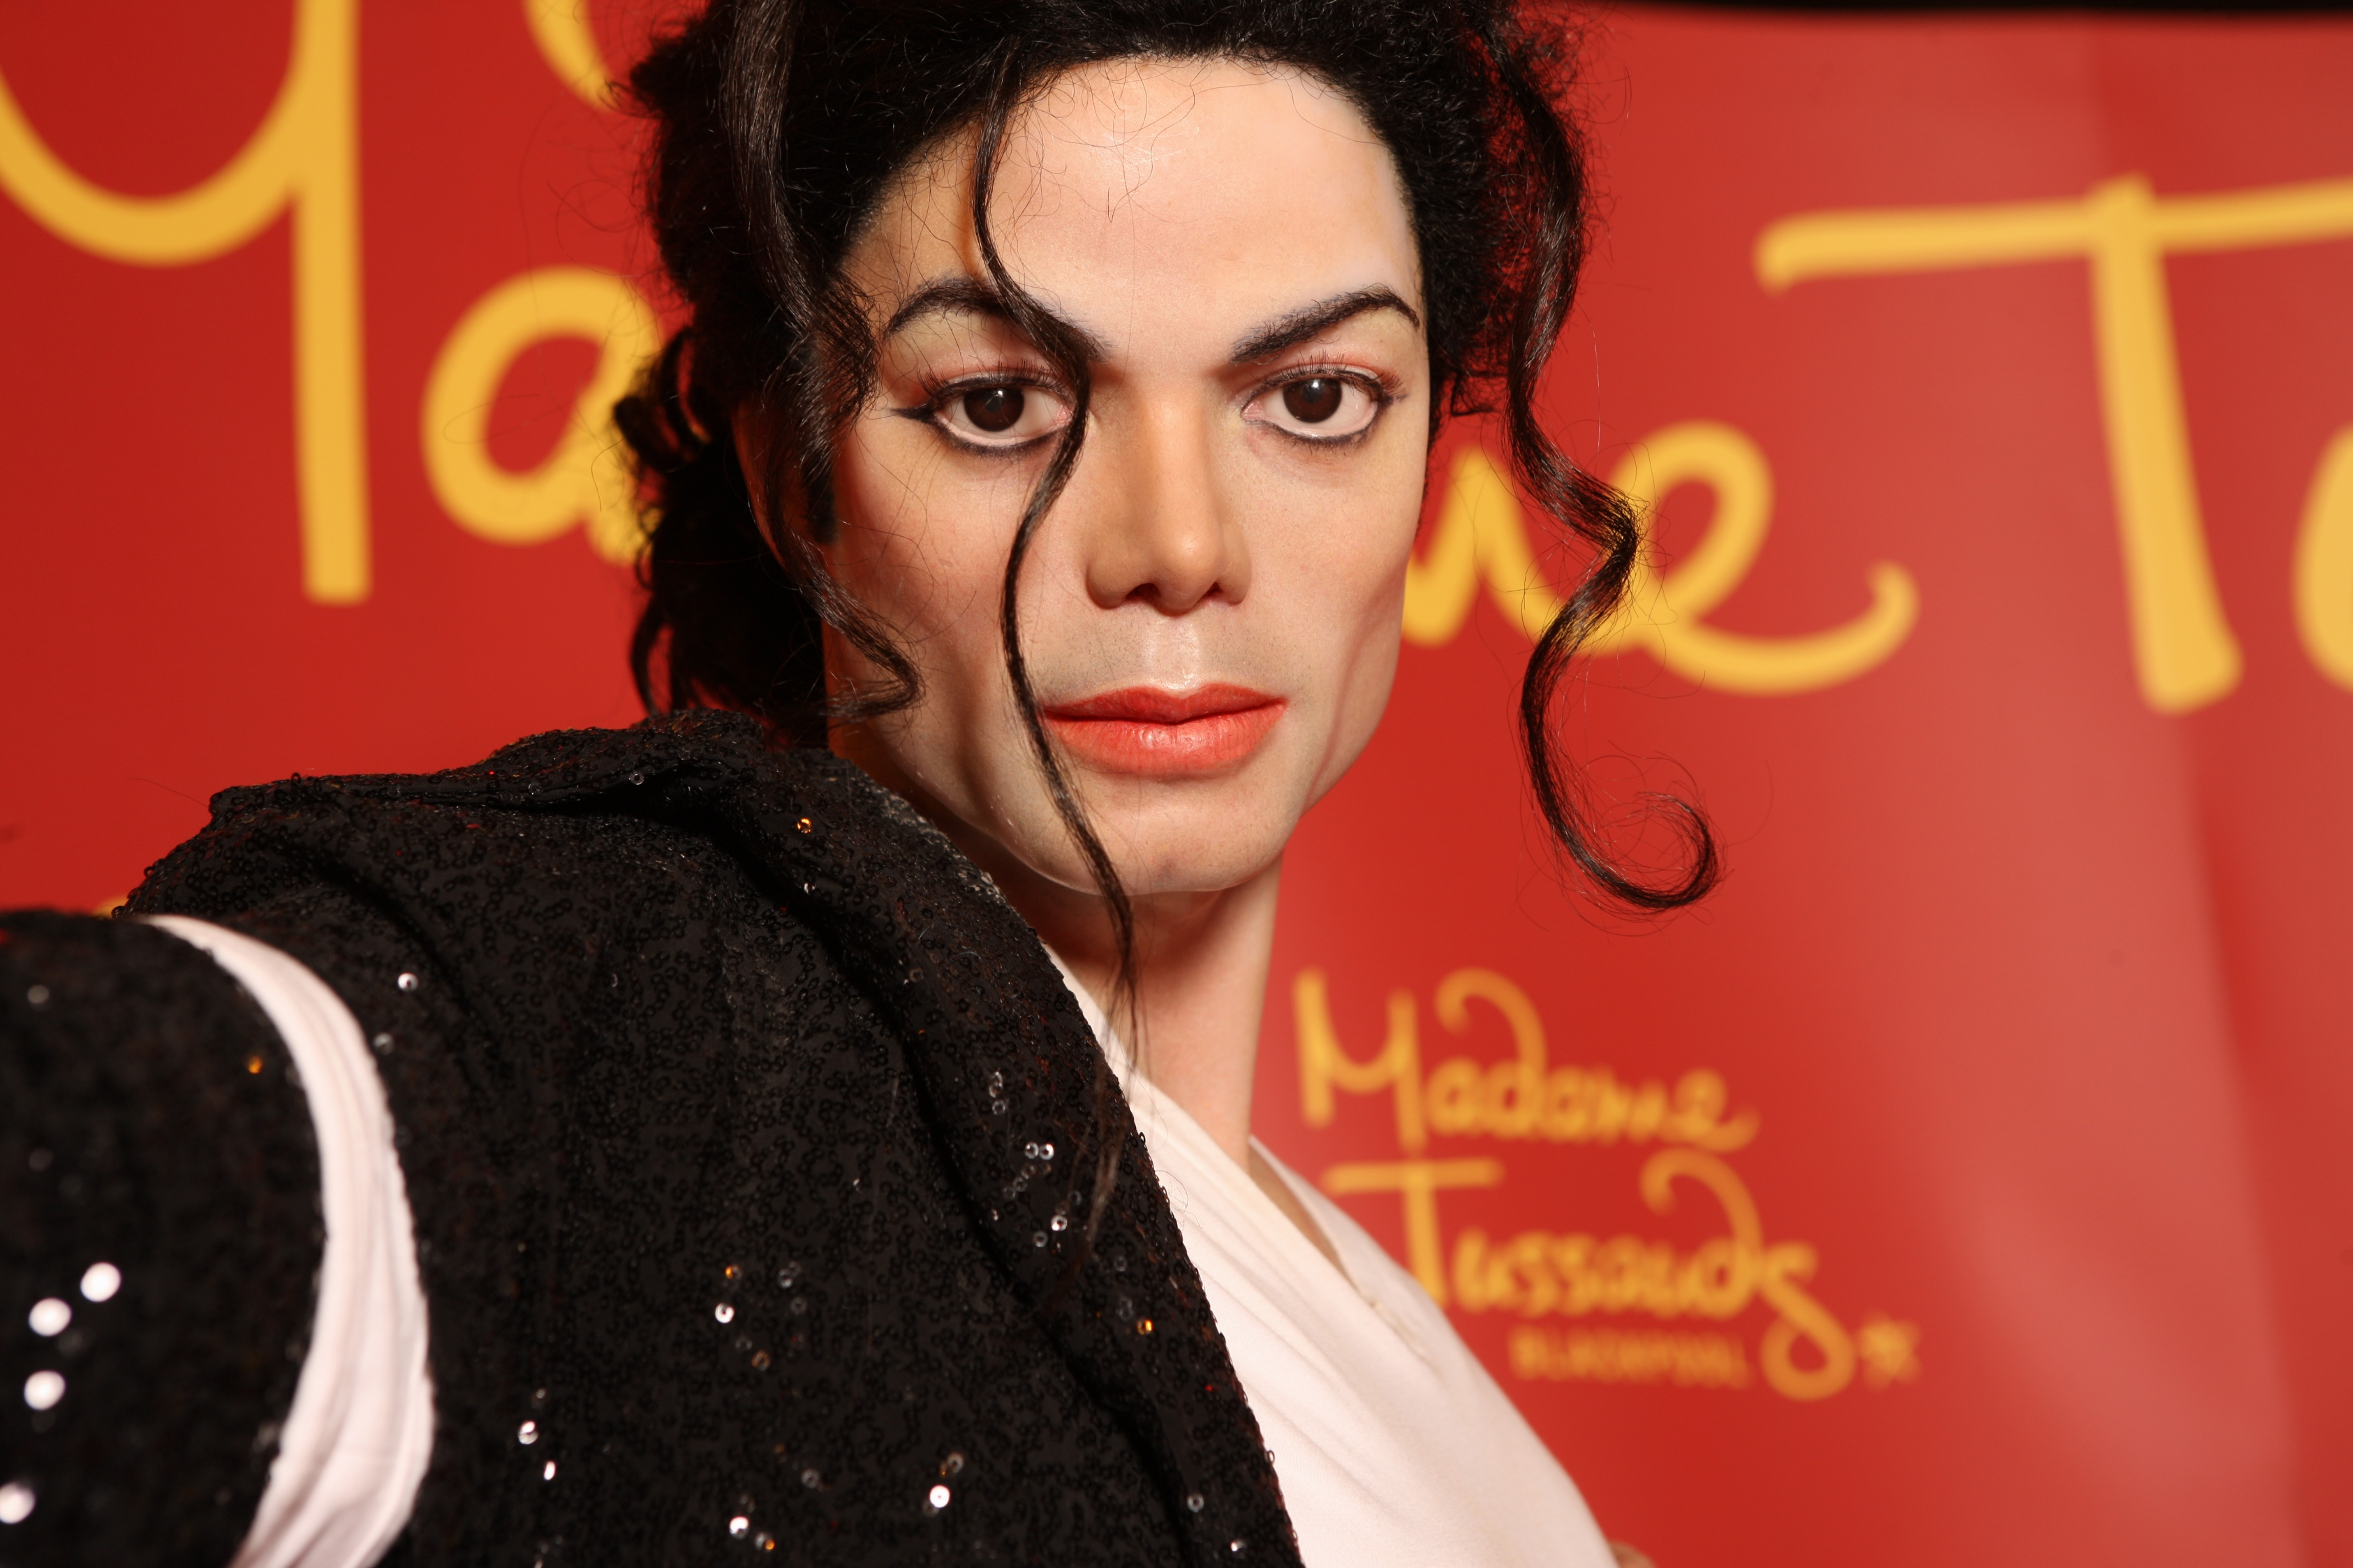 Michael-Jackson-wax-statue-in-Madame-Tussauds-London